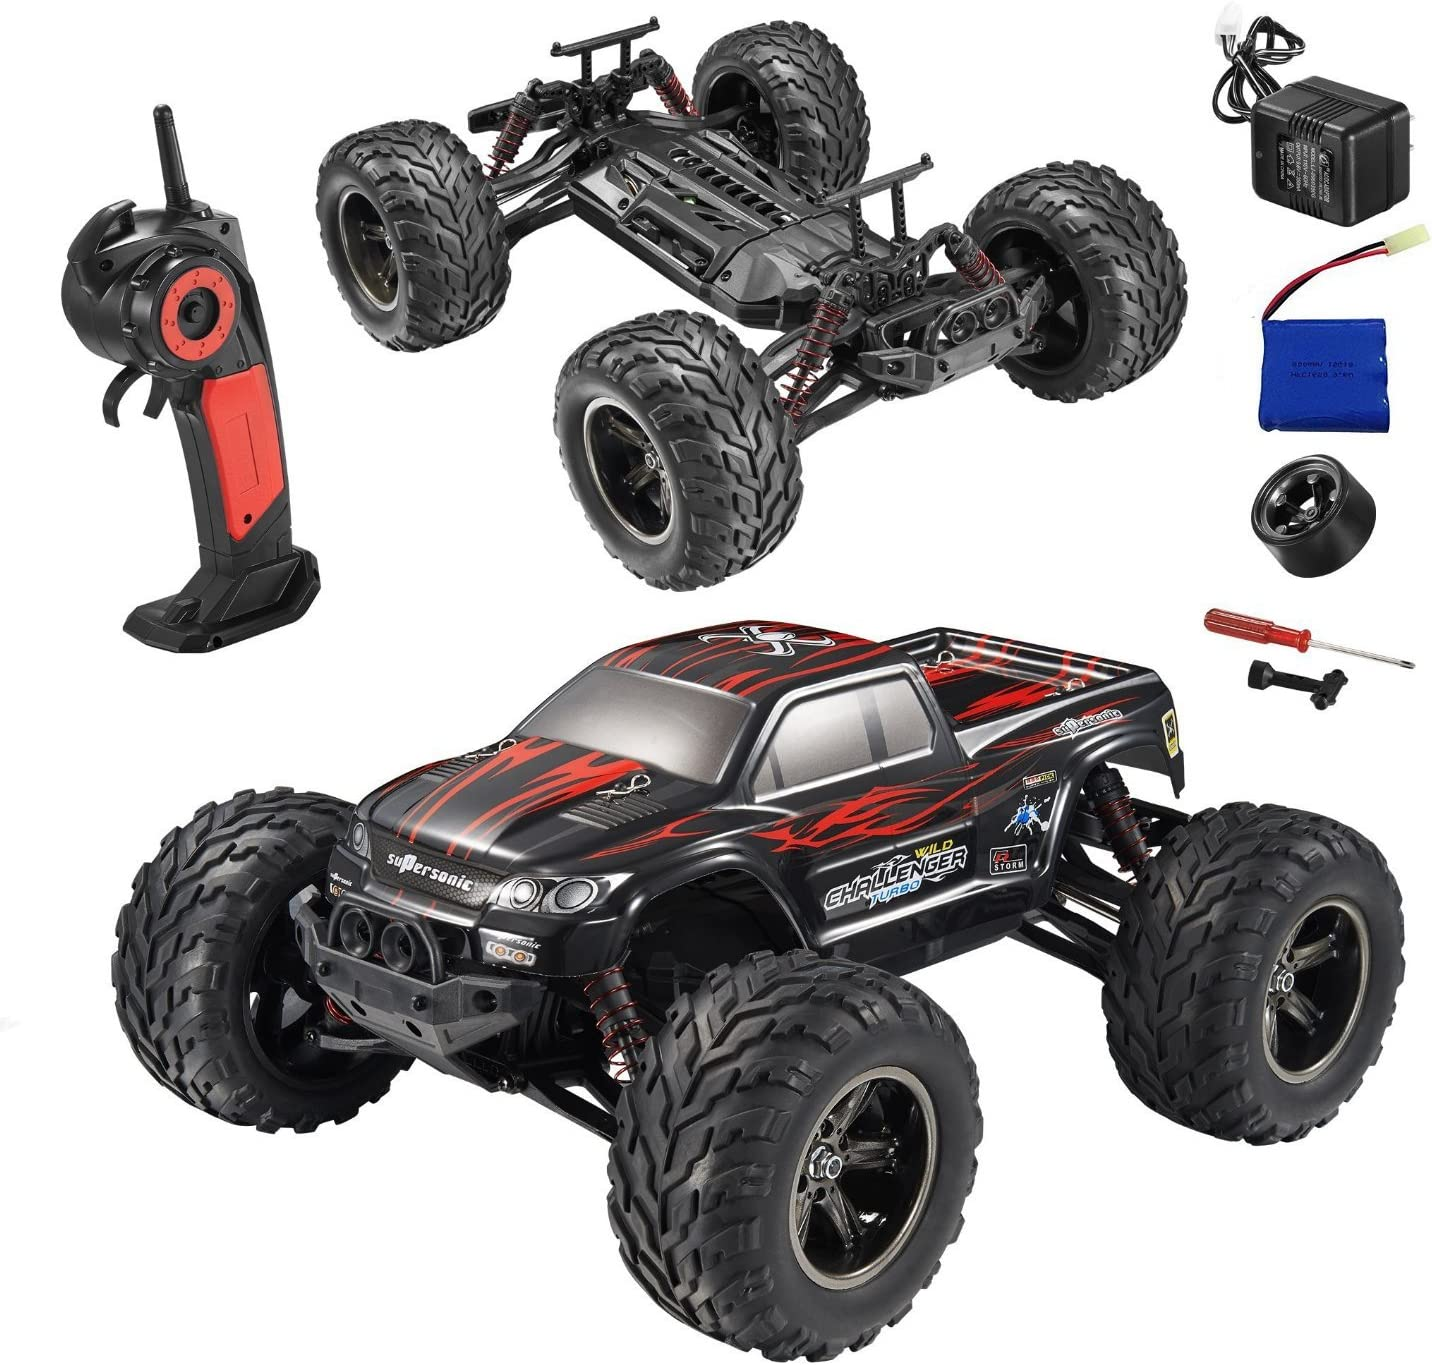 1/12 Scale 2.4Ghz Radio Remote Control 2WD Off Road Monster Truck 42+kmh R/C RTR (Red)